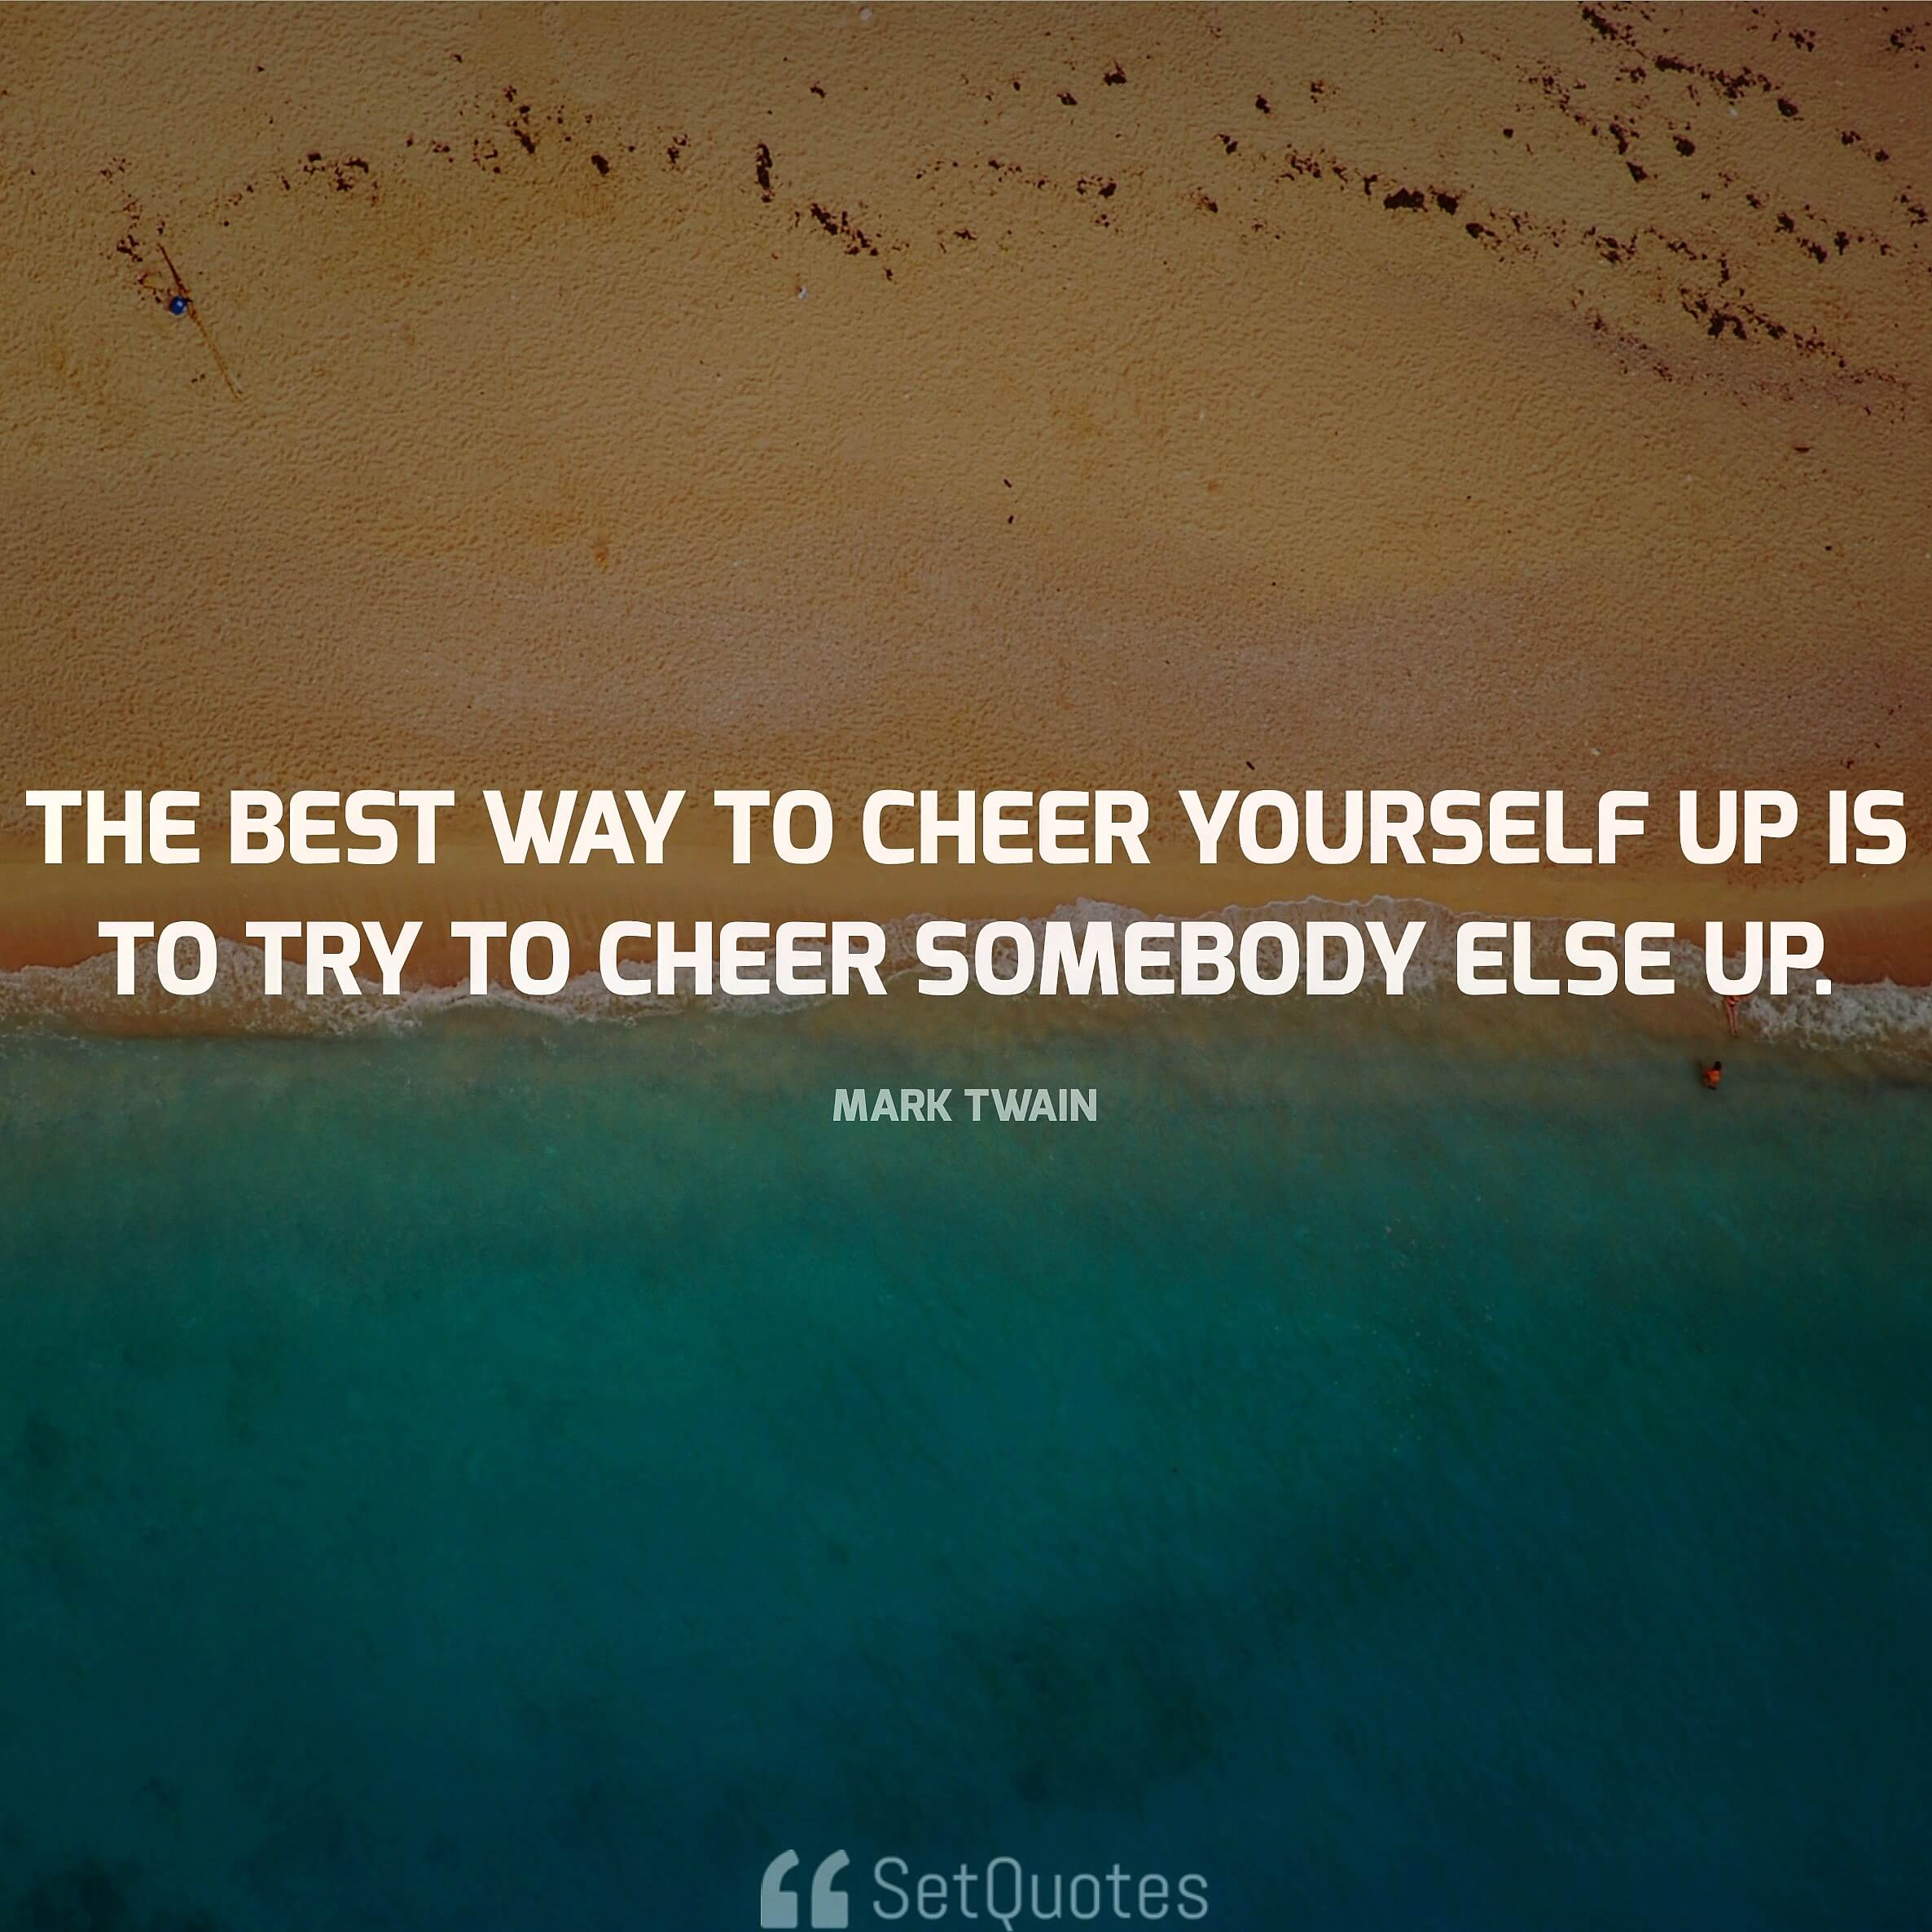 The best way to cheer yourself up is to try to cheer